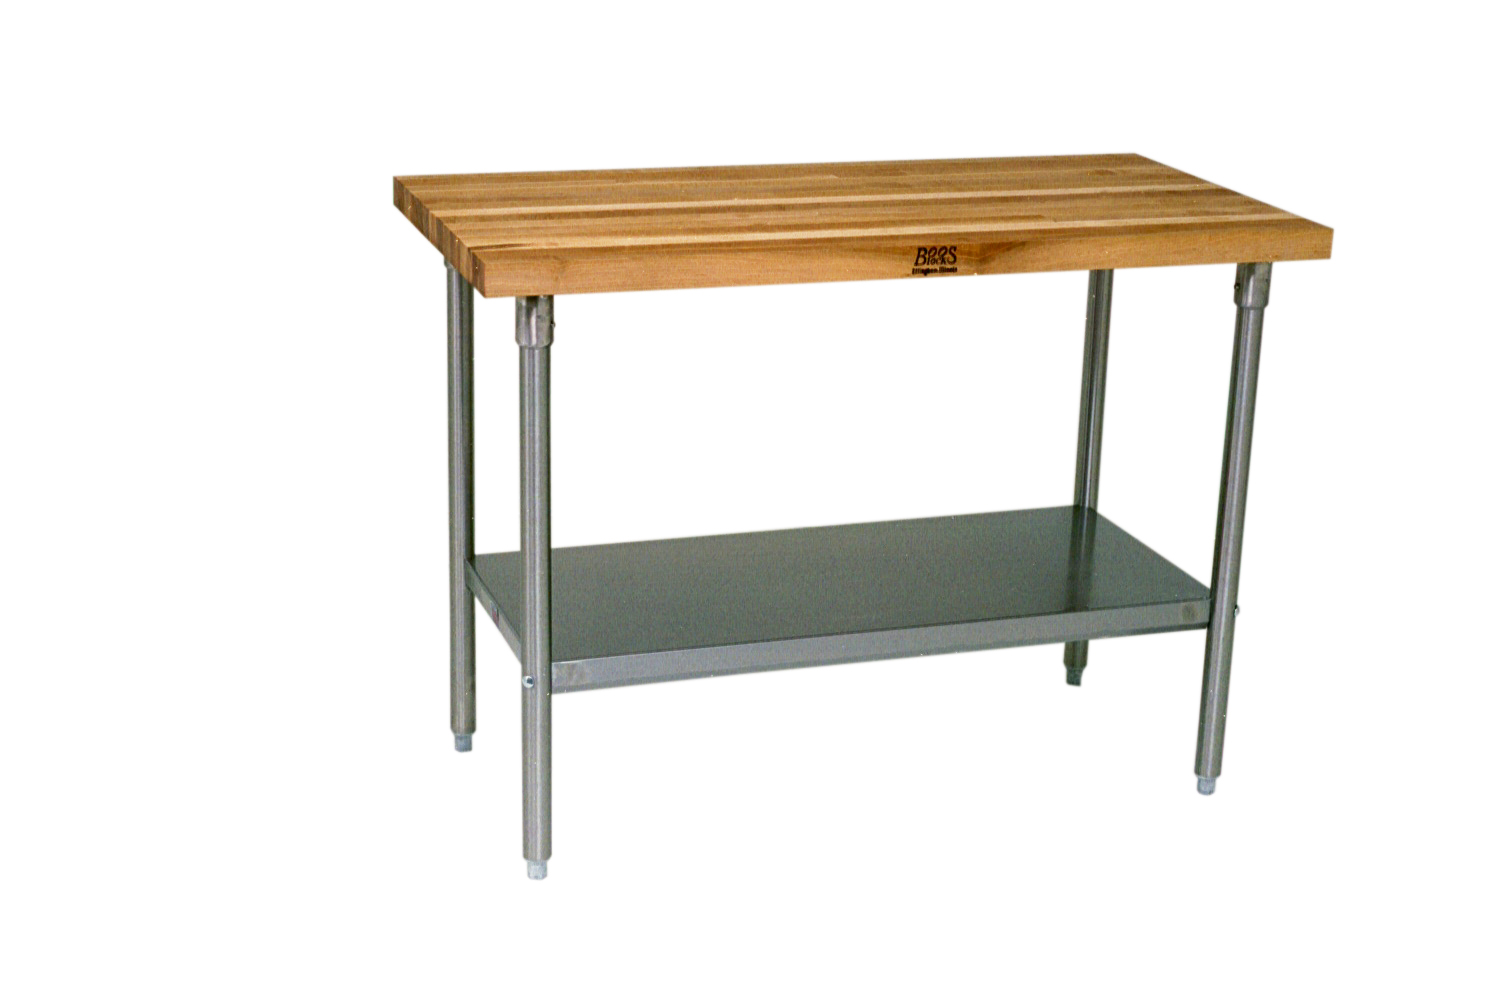 John Boos Thick Maple Top Work Table on Galvanized Base with Shelf, 60 x 24 Inch